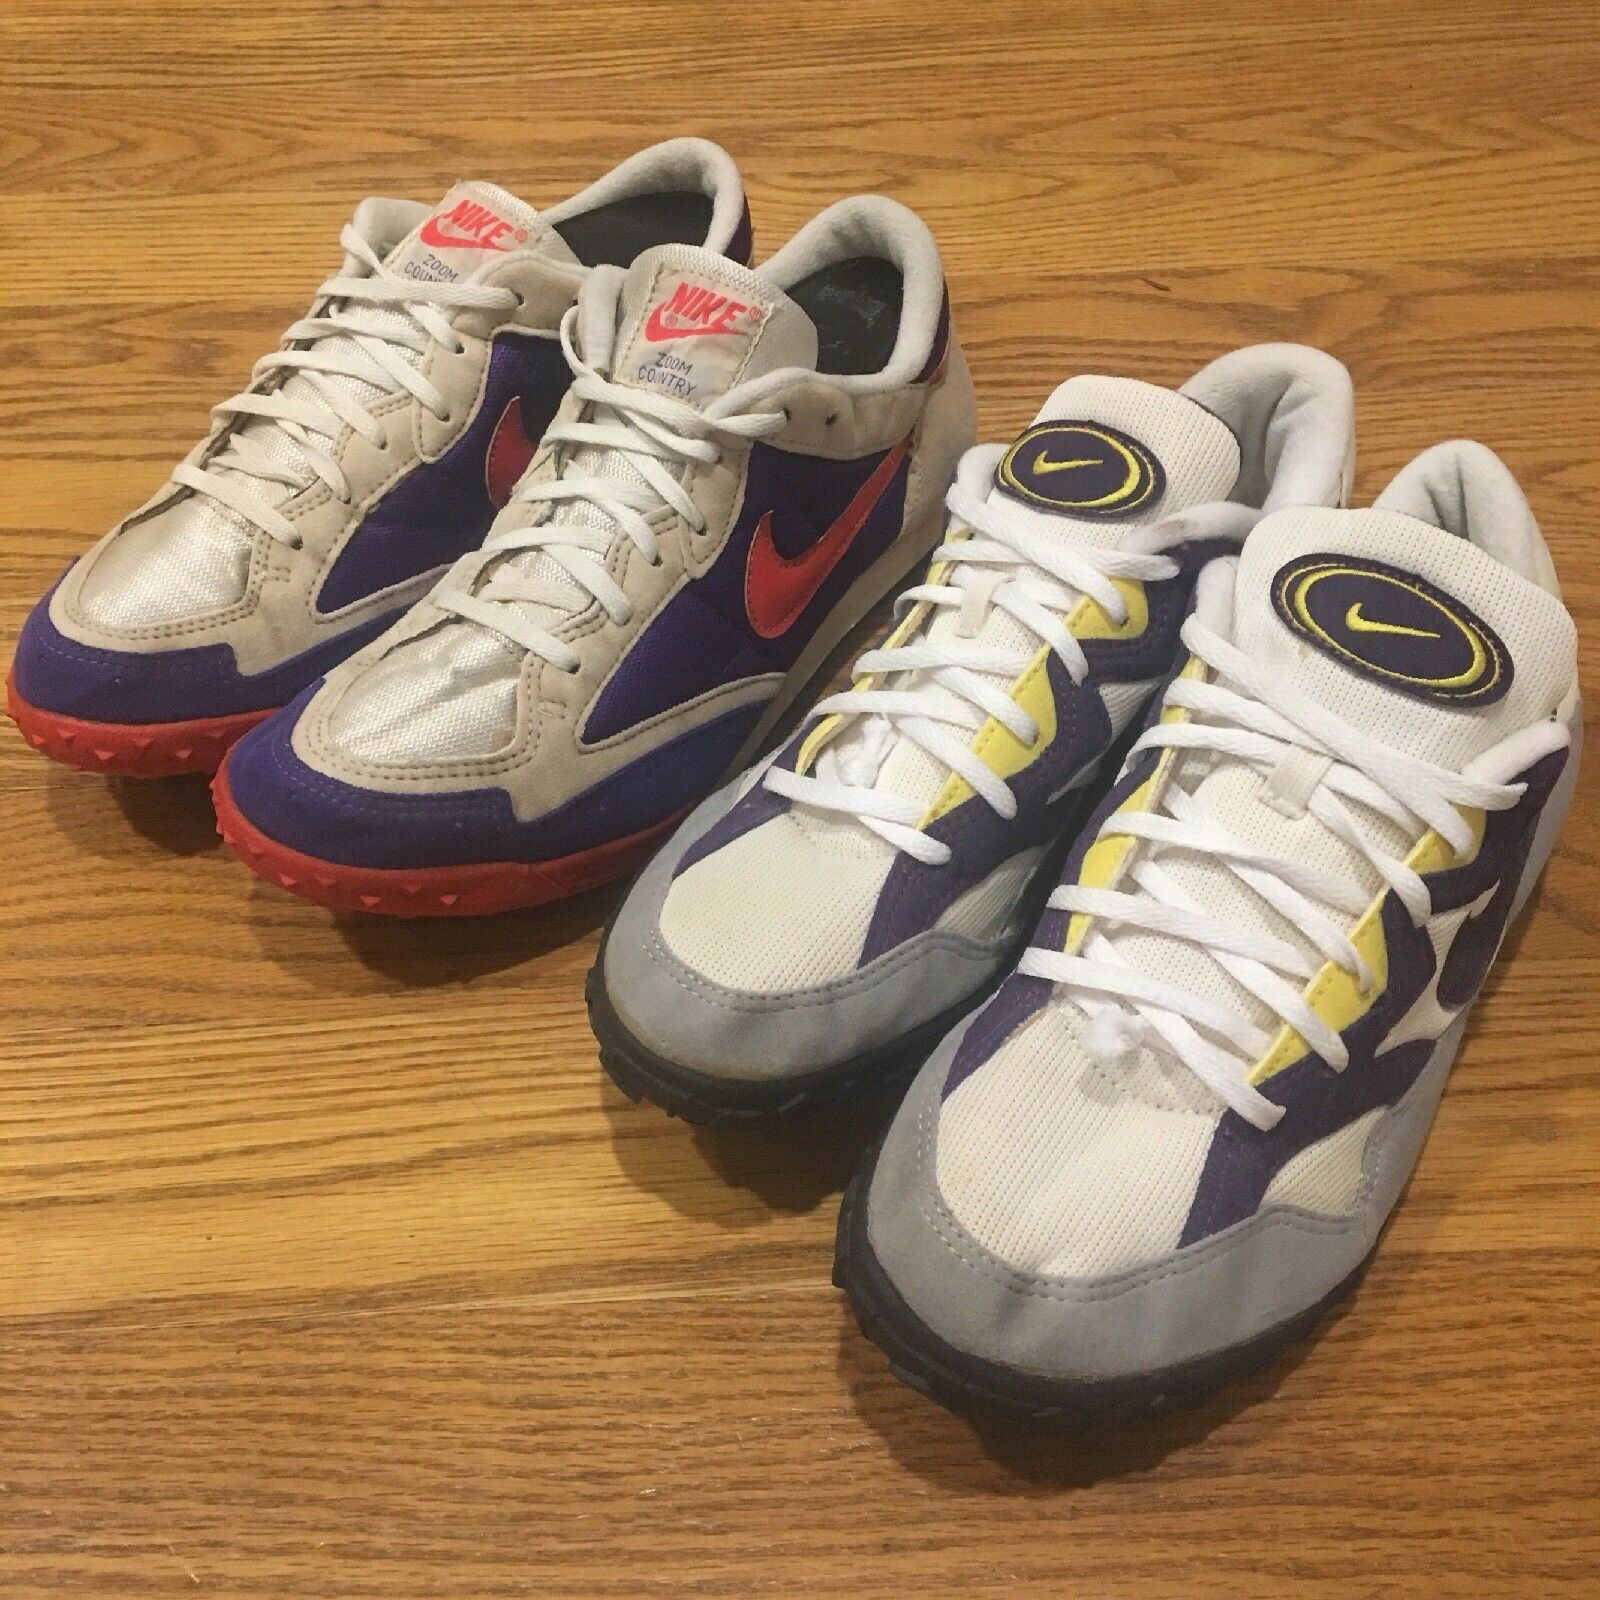 Vintage NIKE Zoom Country Rare Track Shoes 1997 Erin 70s 80s 90s Lot Erin 1997 Sicher Vntg 4f0d4c